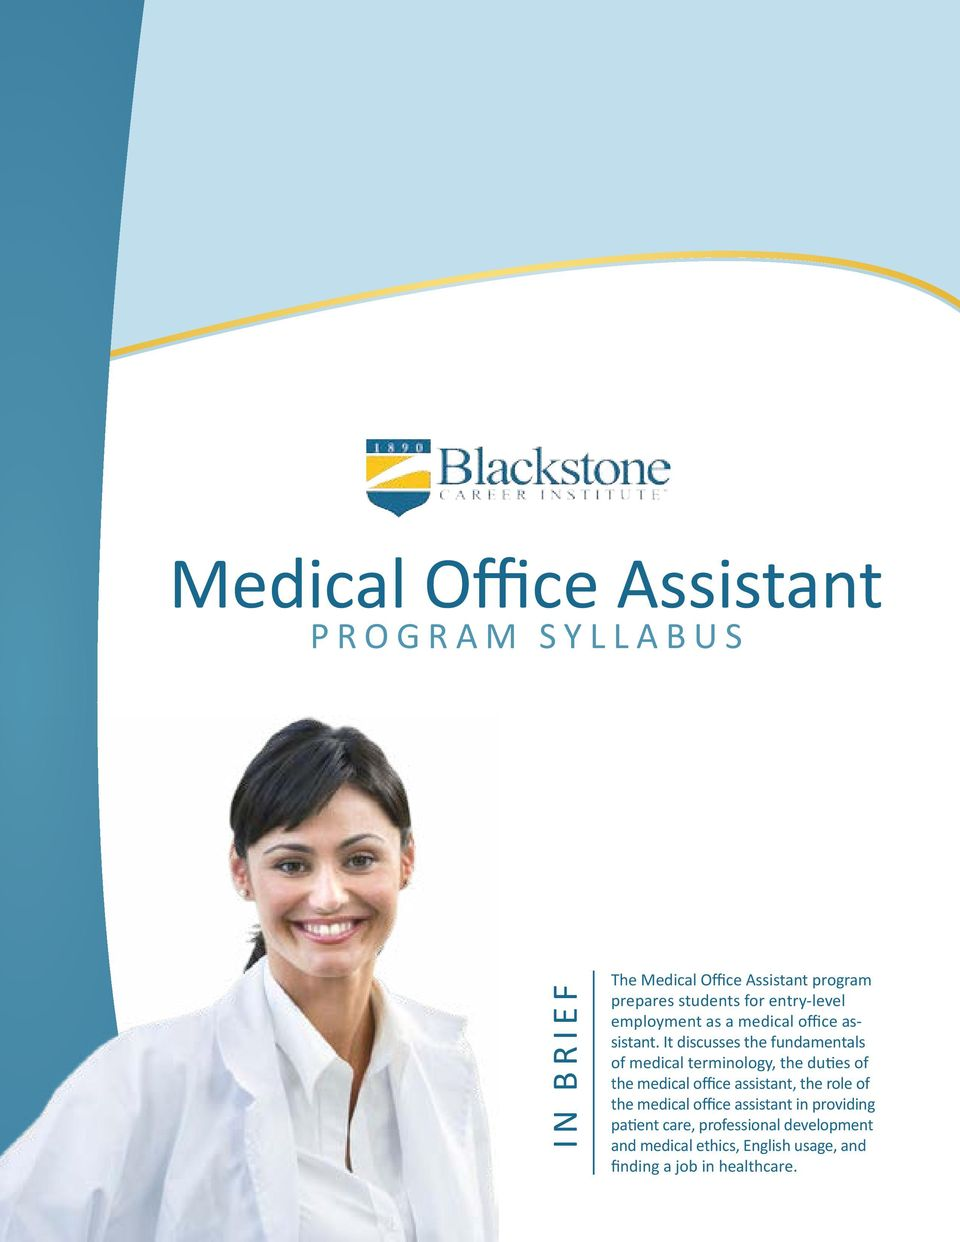 It discusses the fundamentals of medical terminology, the duties of the medical office assistant, the